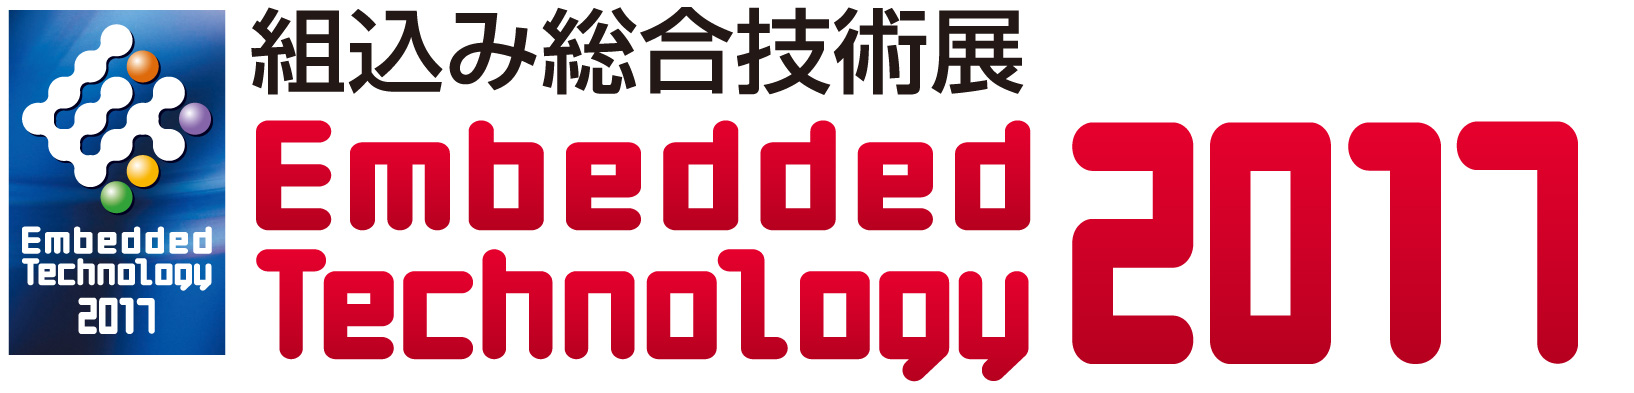 Embedded Technology 2017